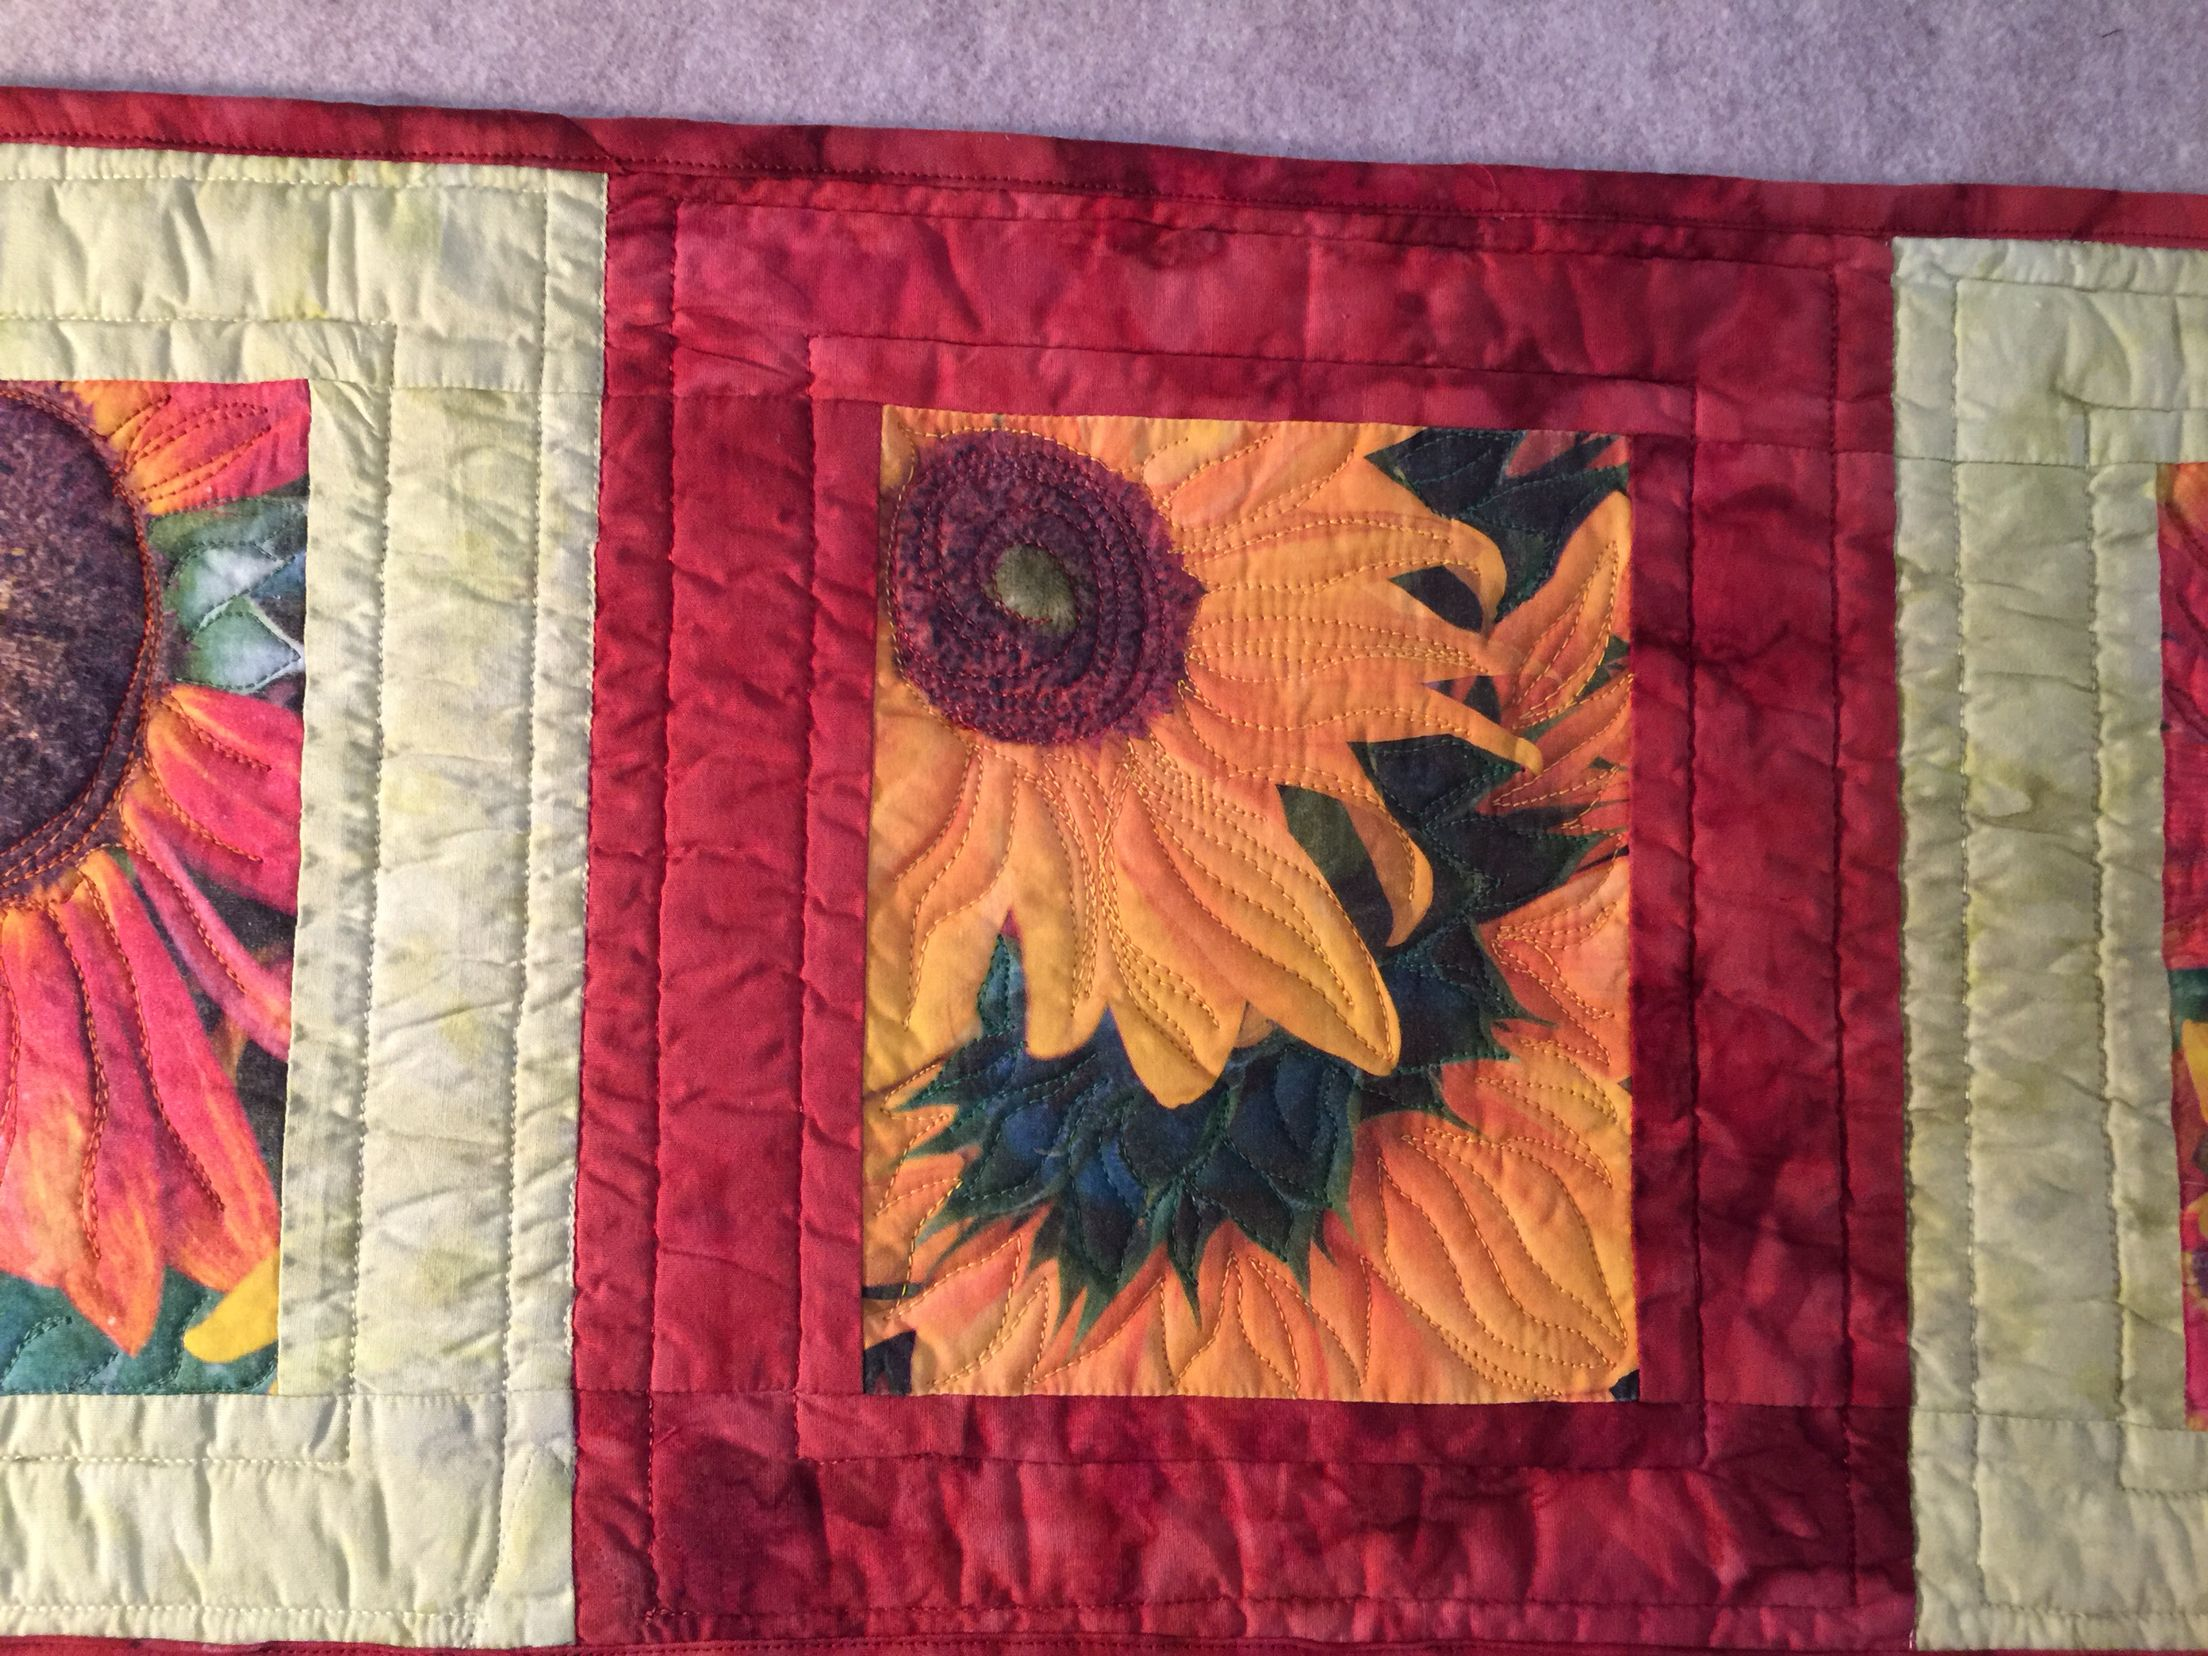 image about Printable Fabric Sheets for Quilting named Thread portray with Threads Printable Cloth sheets!!! This sort of